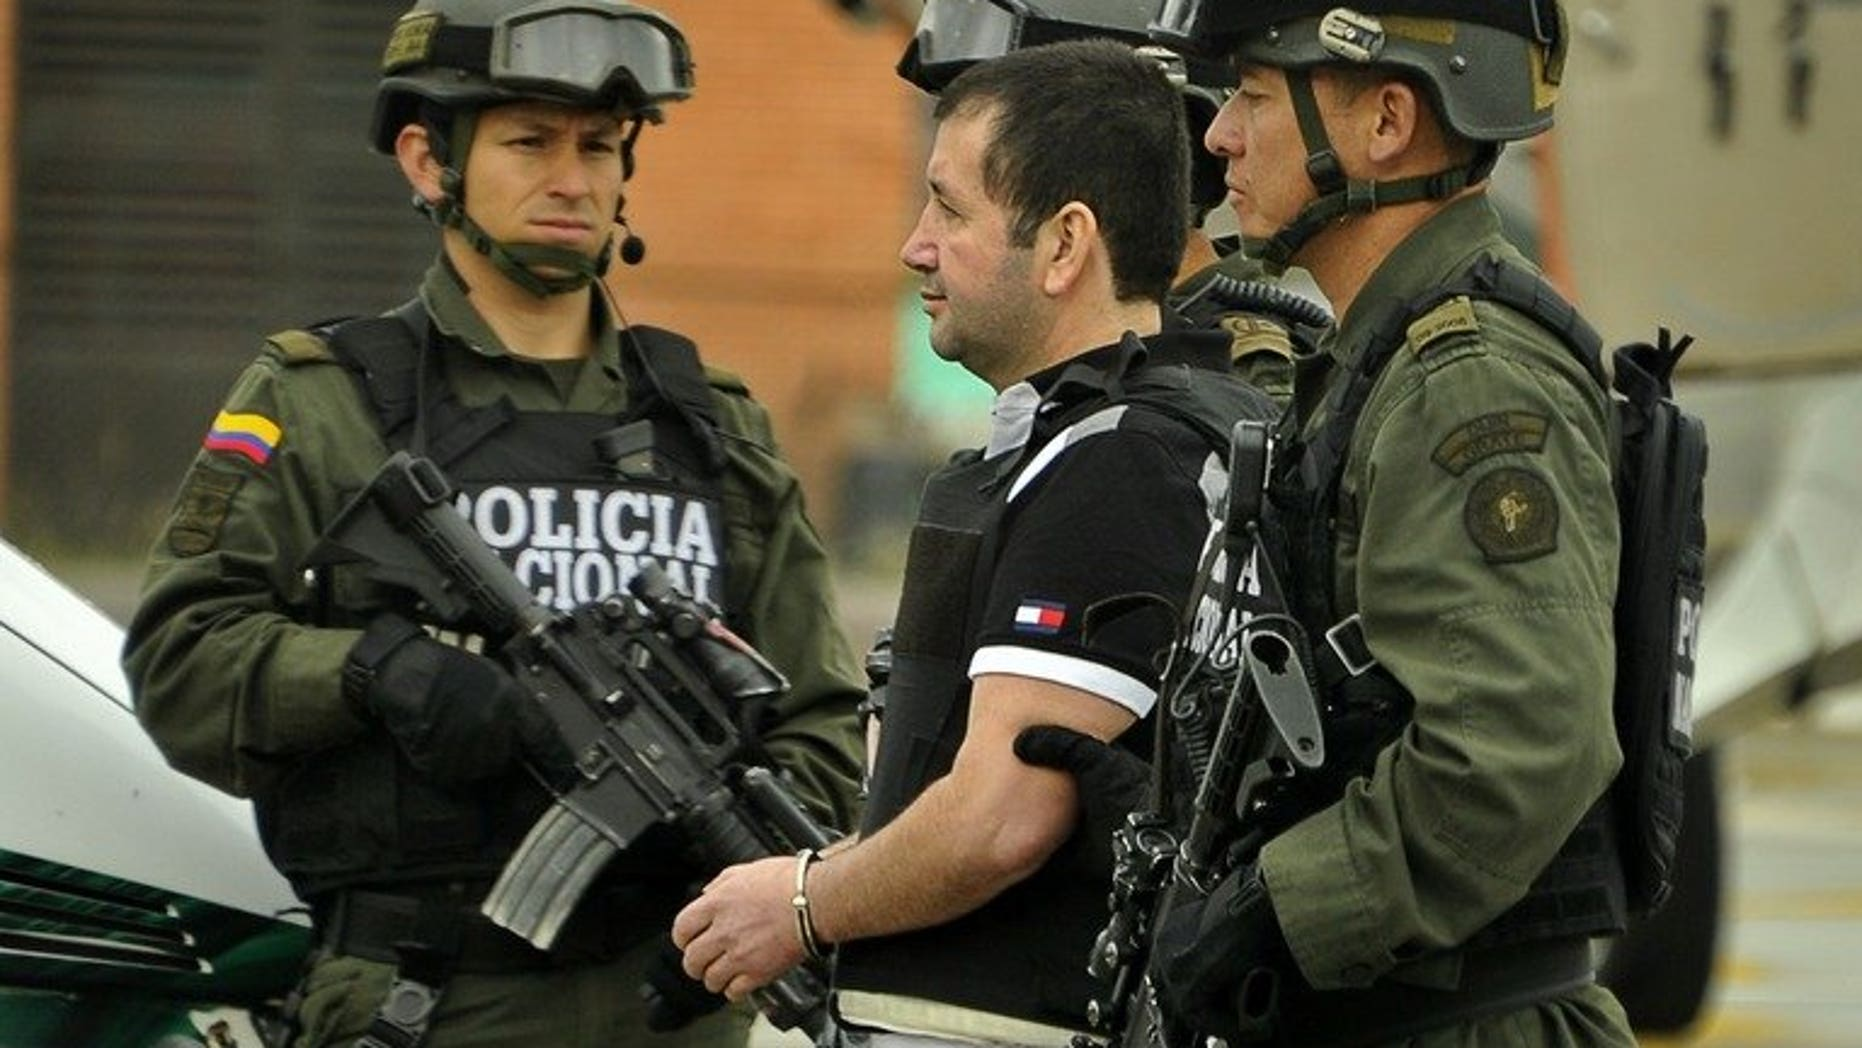 """Colombian drug trafficker Daniel """"El Loco"""" Barrera is escorted by police on July 9, 2013 in Bogota. The last of the major Colombian drug lords, Barrera, was extradited to the United States, where there had been a $5 million reward for his capture, Colombian police said."""